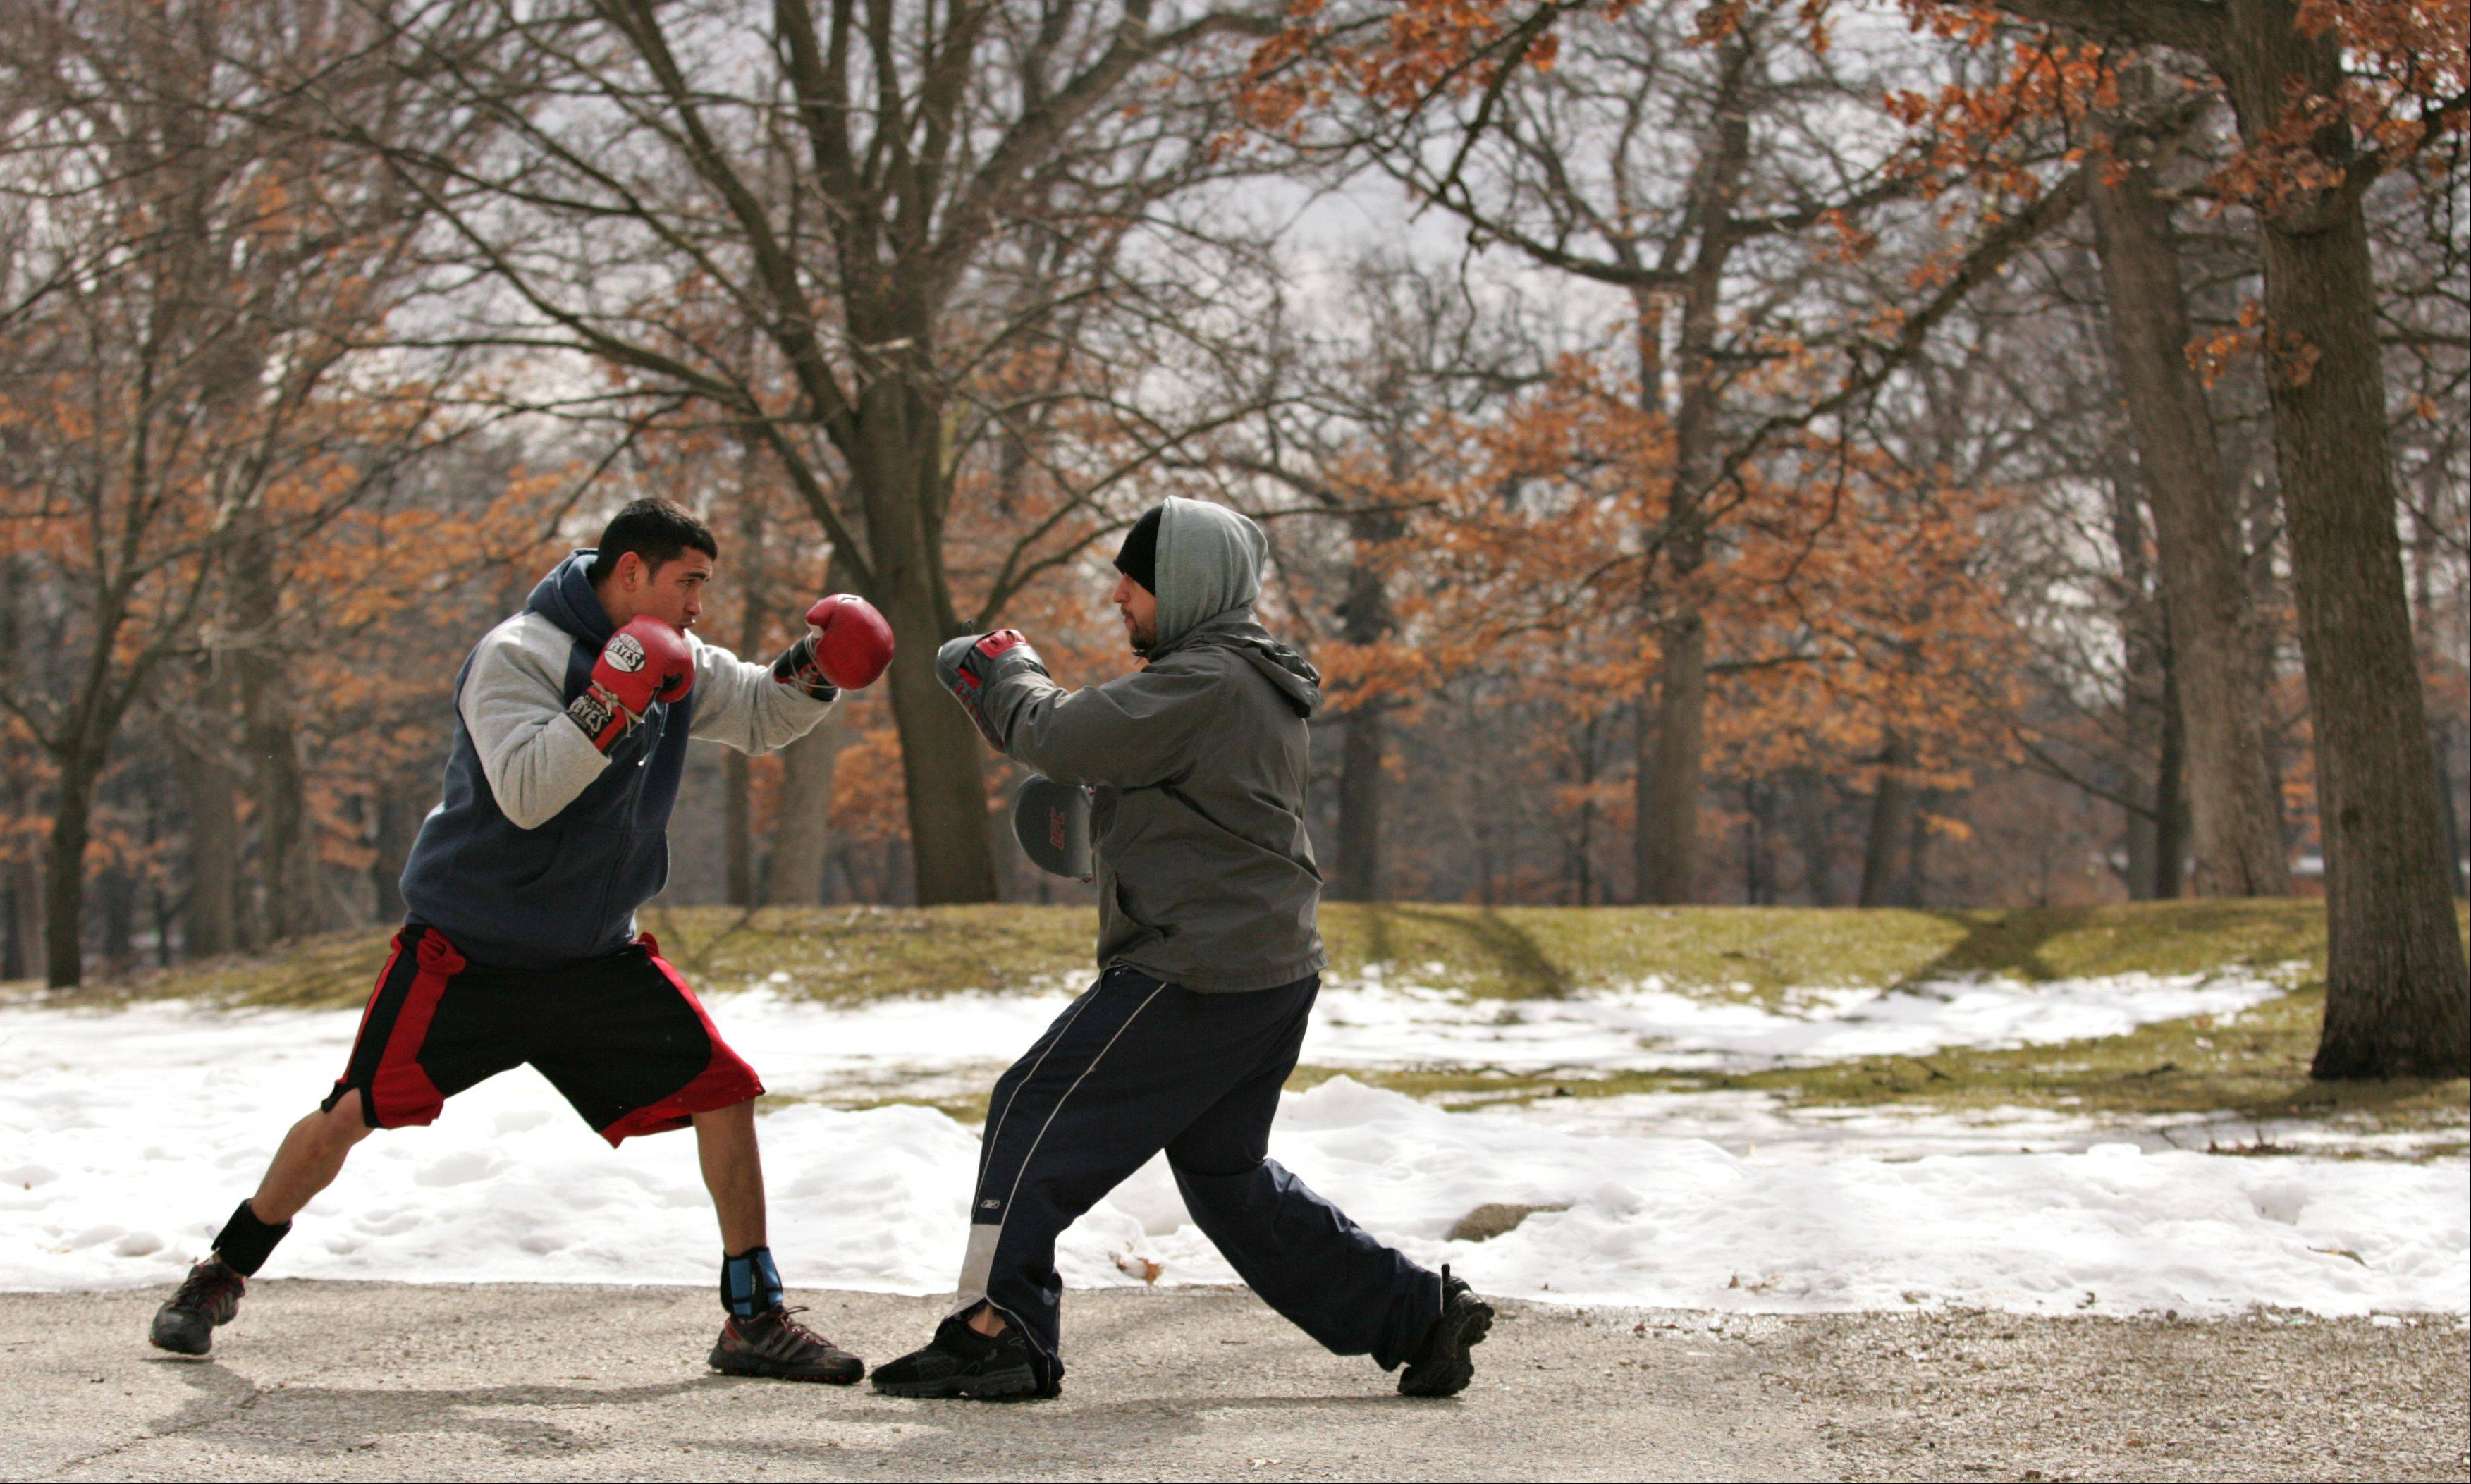 Samuel Sanchez, of Elgin, left, gets a sparring workout with his brother Miguel at Lords Park Tuesday in Elgin. The 25-year-old is an accomplished boxer, having won several titles in the featherweight class. Miguel says his brother has been boxing since he was 15.